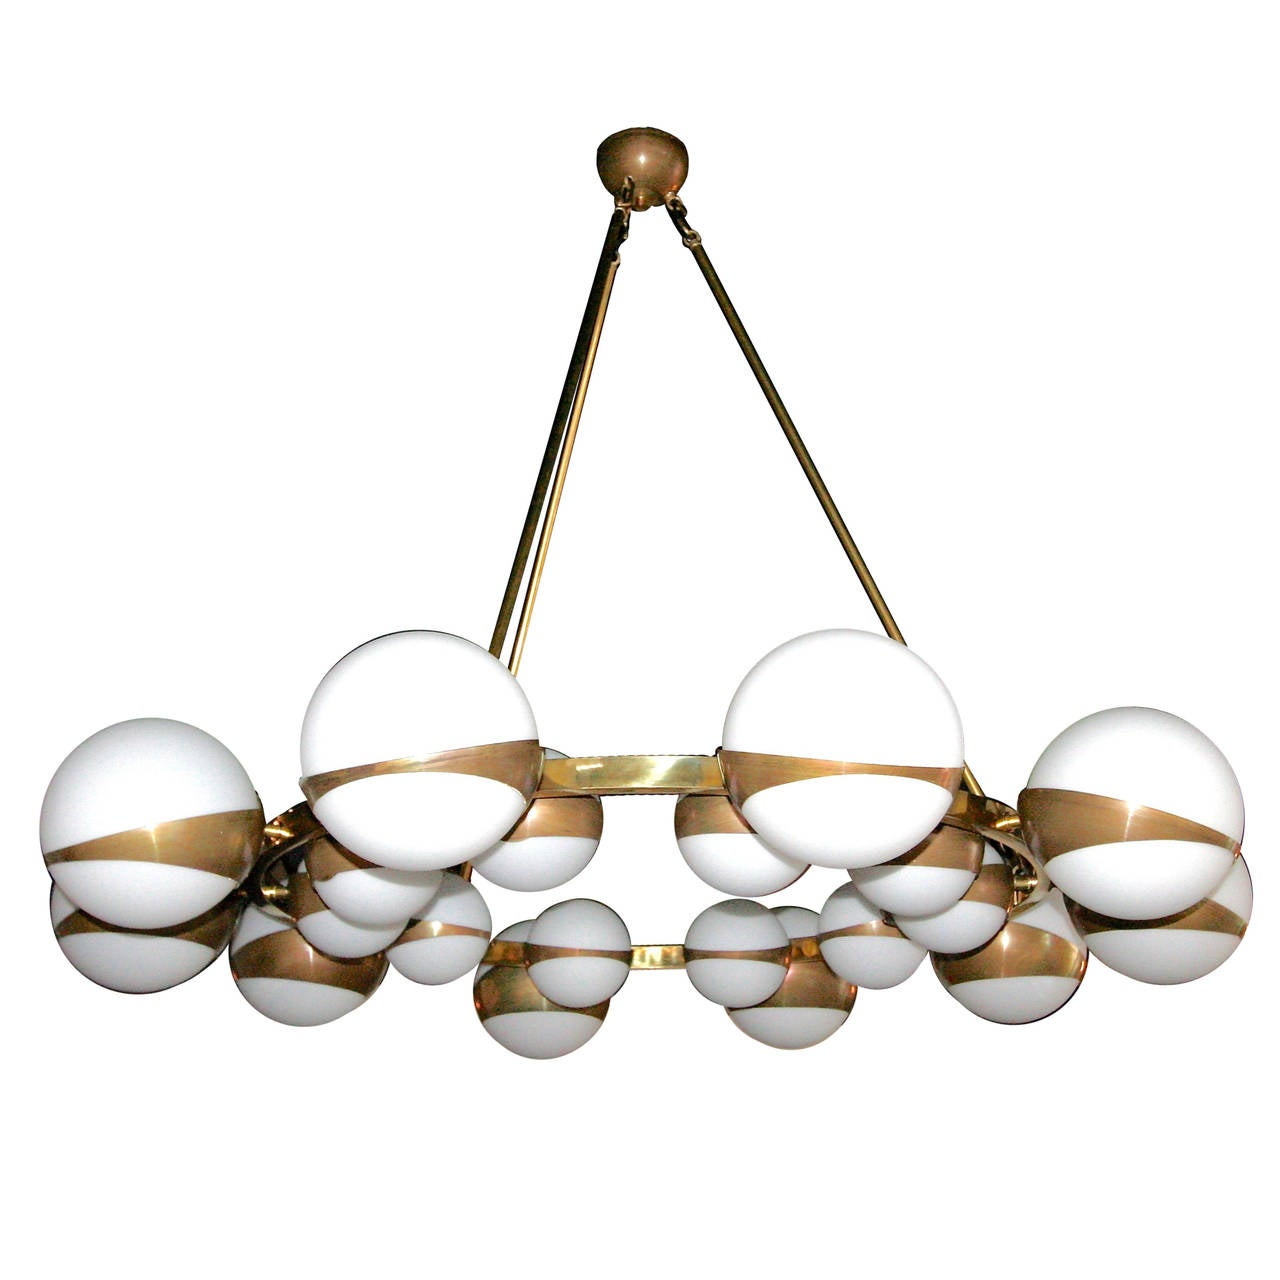 Round globe chandelier with white glass balls on brass frame for round globe chandelier with white glass balls on brass frame for sale mozeypictures Image collections